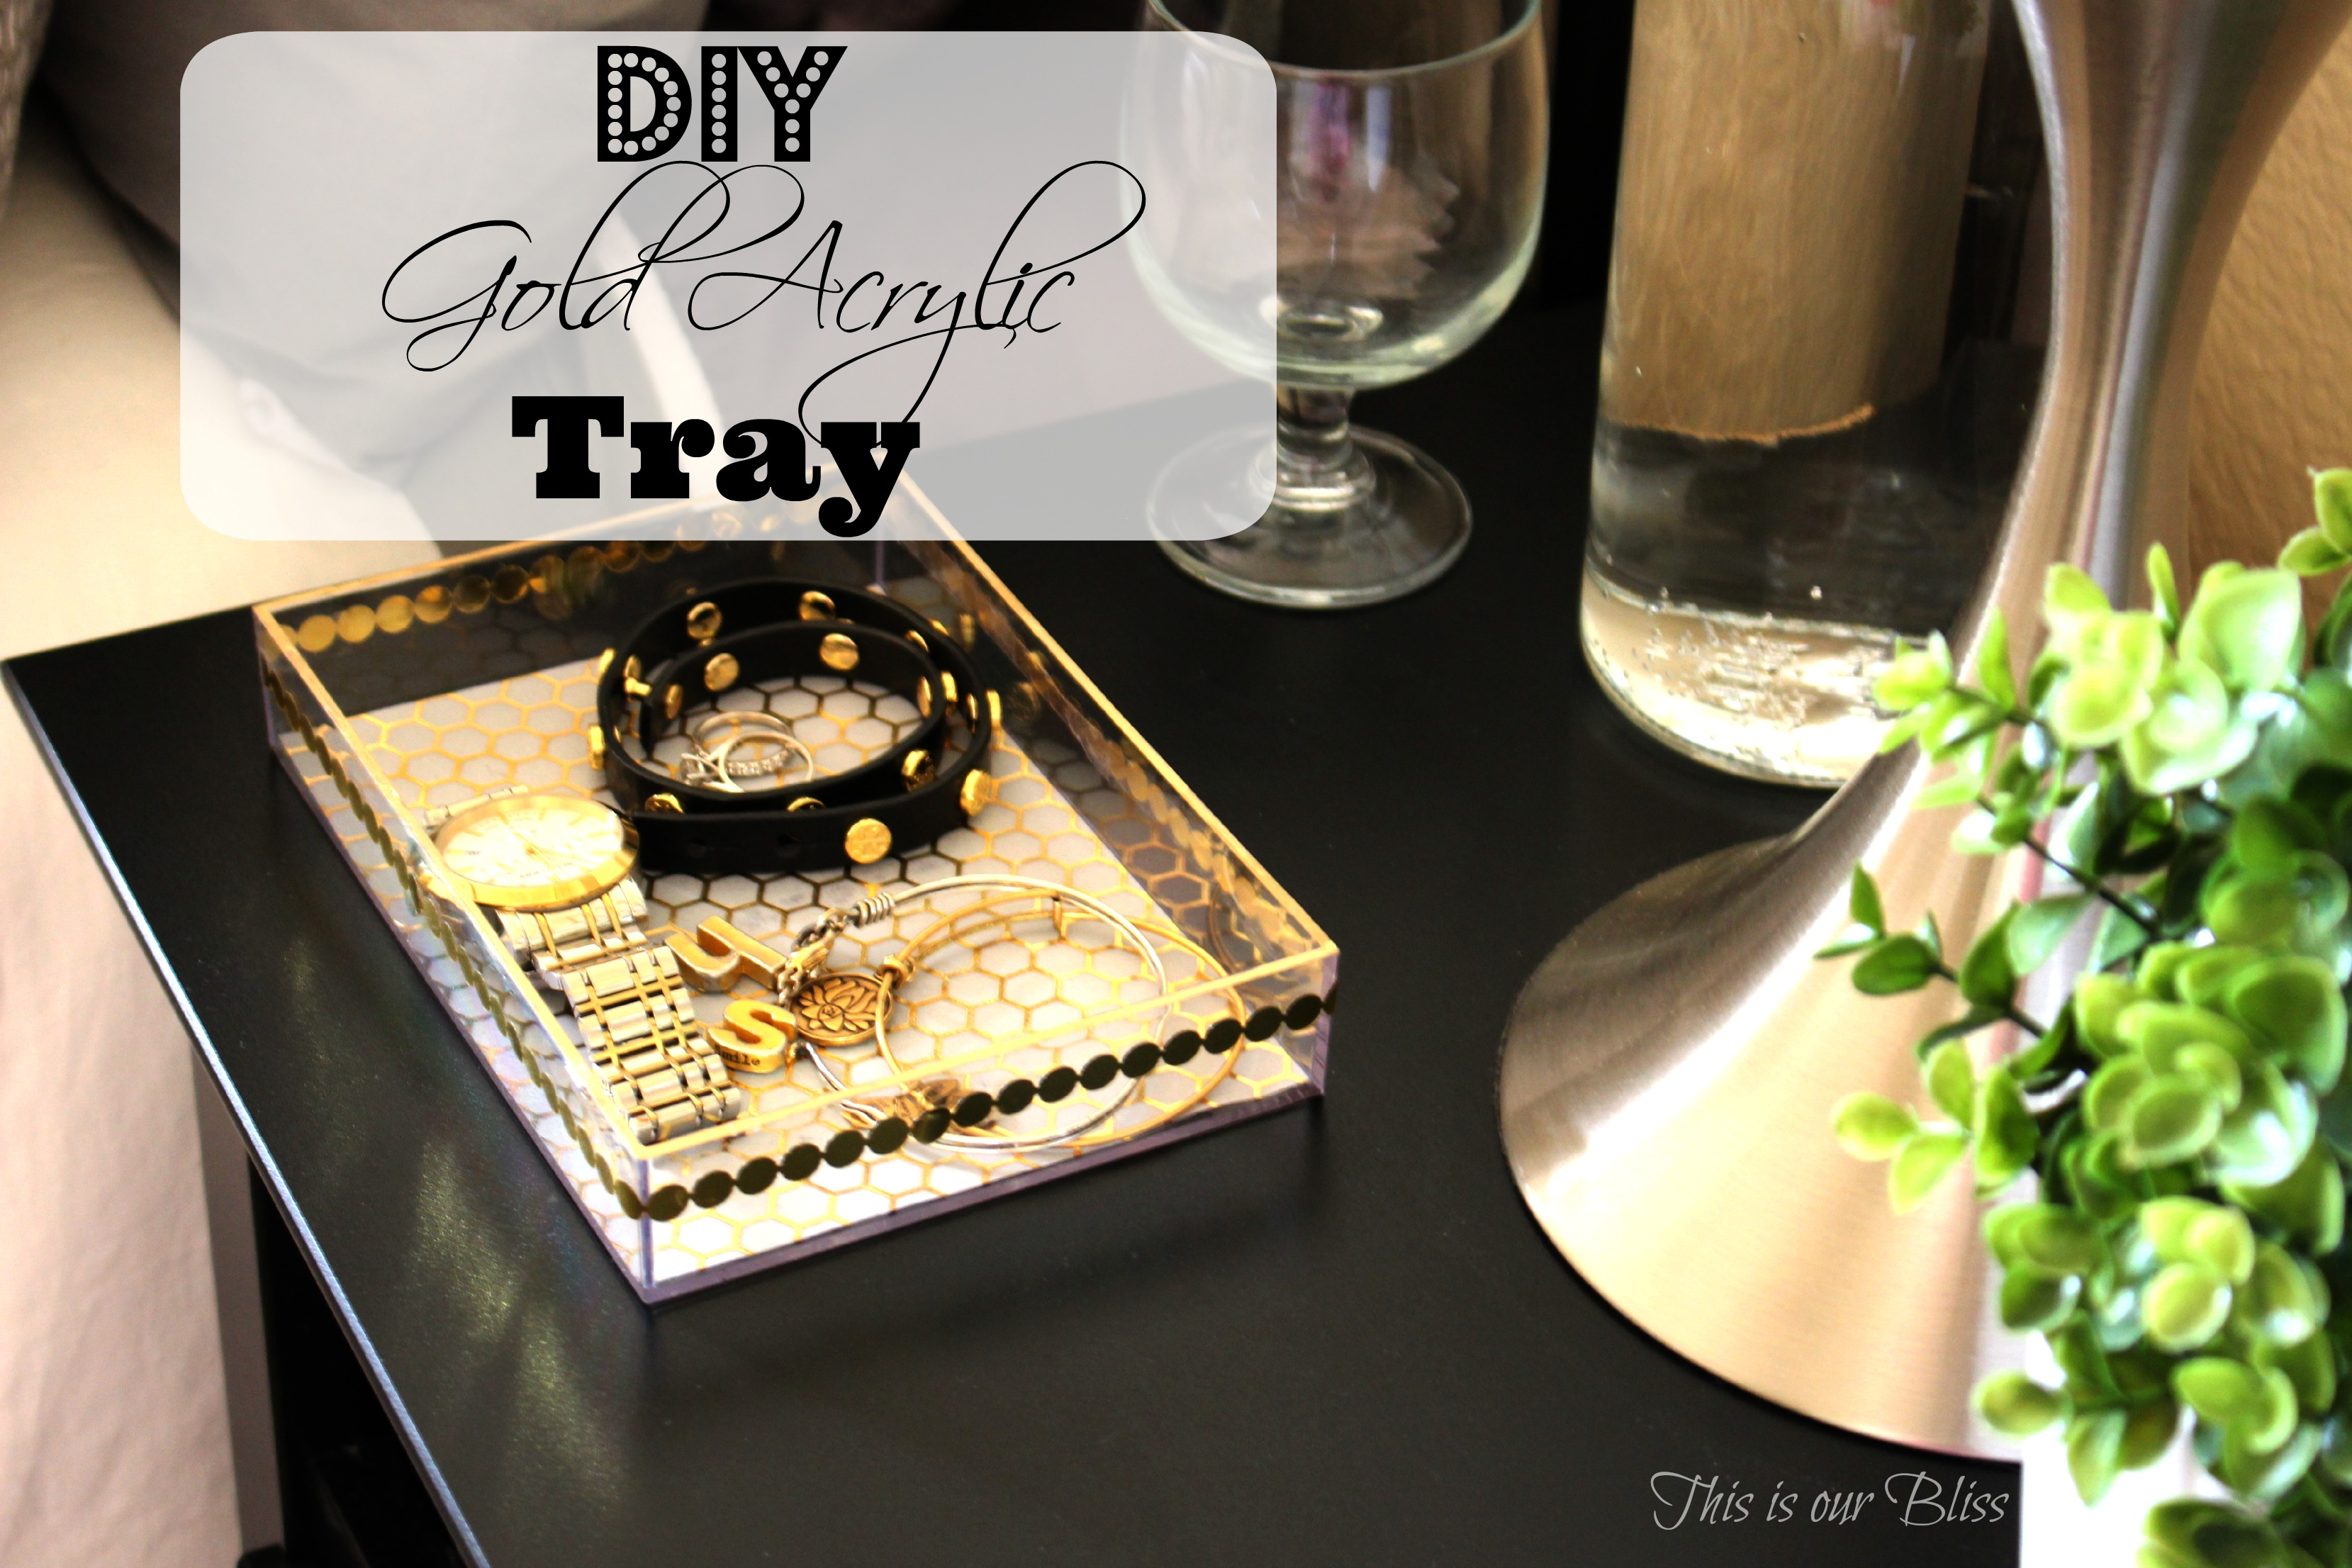 Diy Gold Detail Acrylic Tray This Is Our Bliss